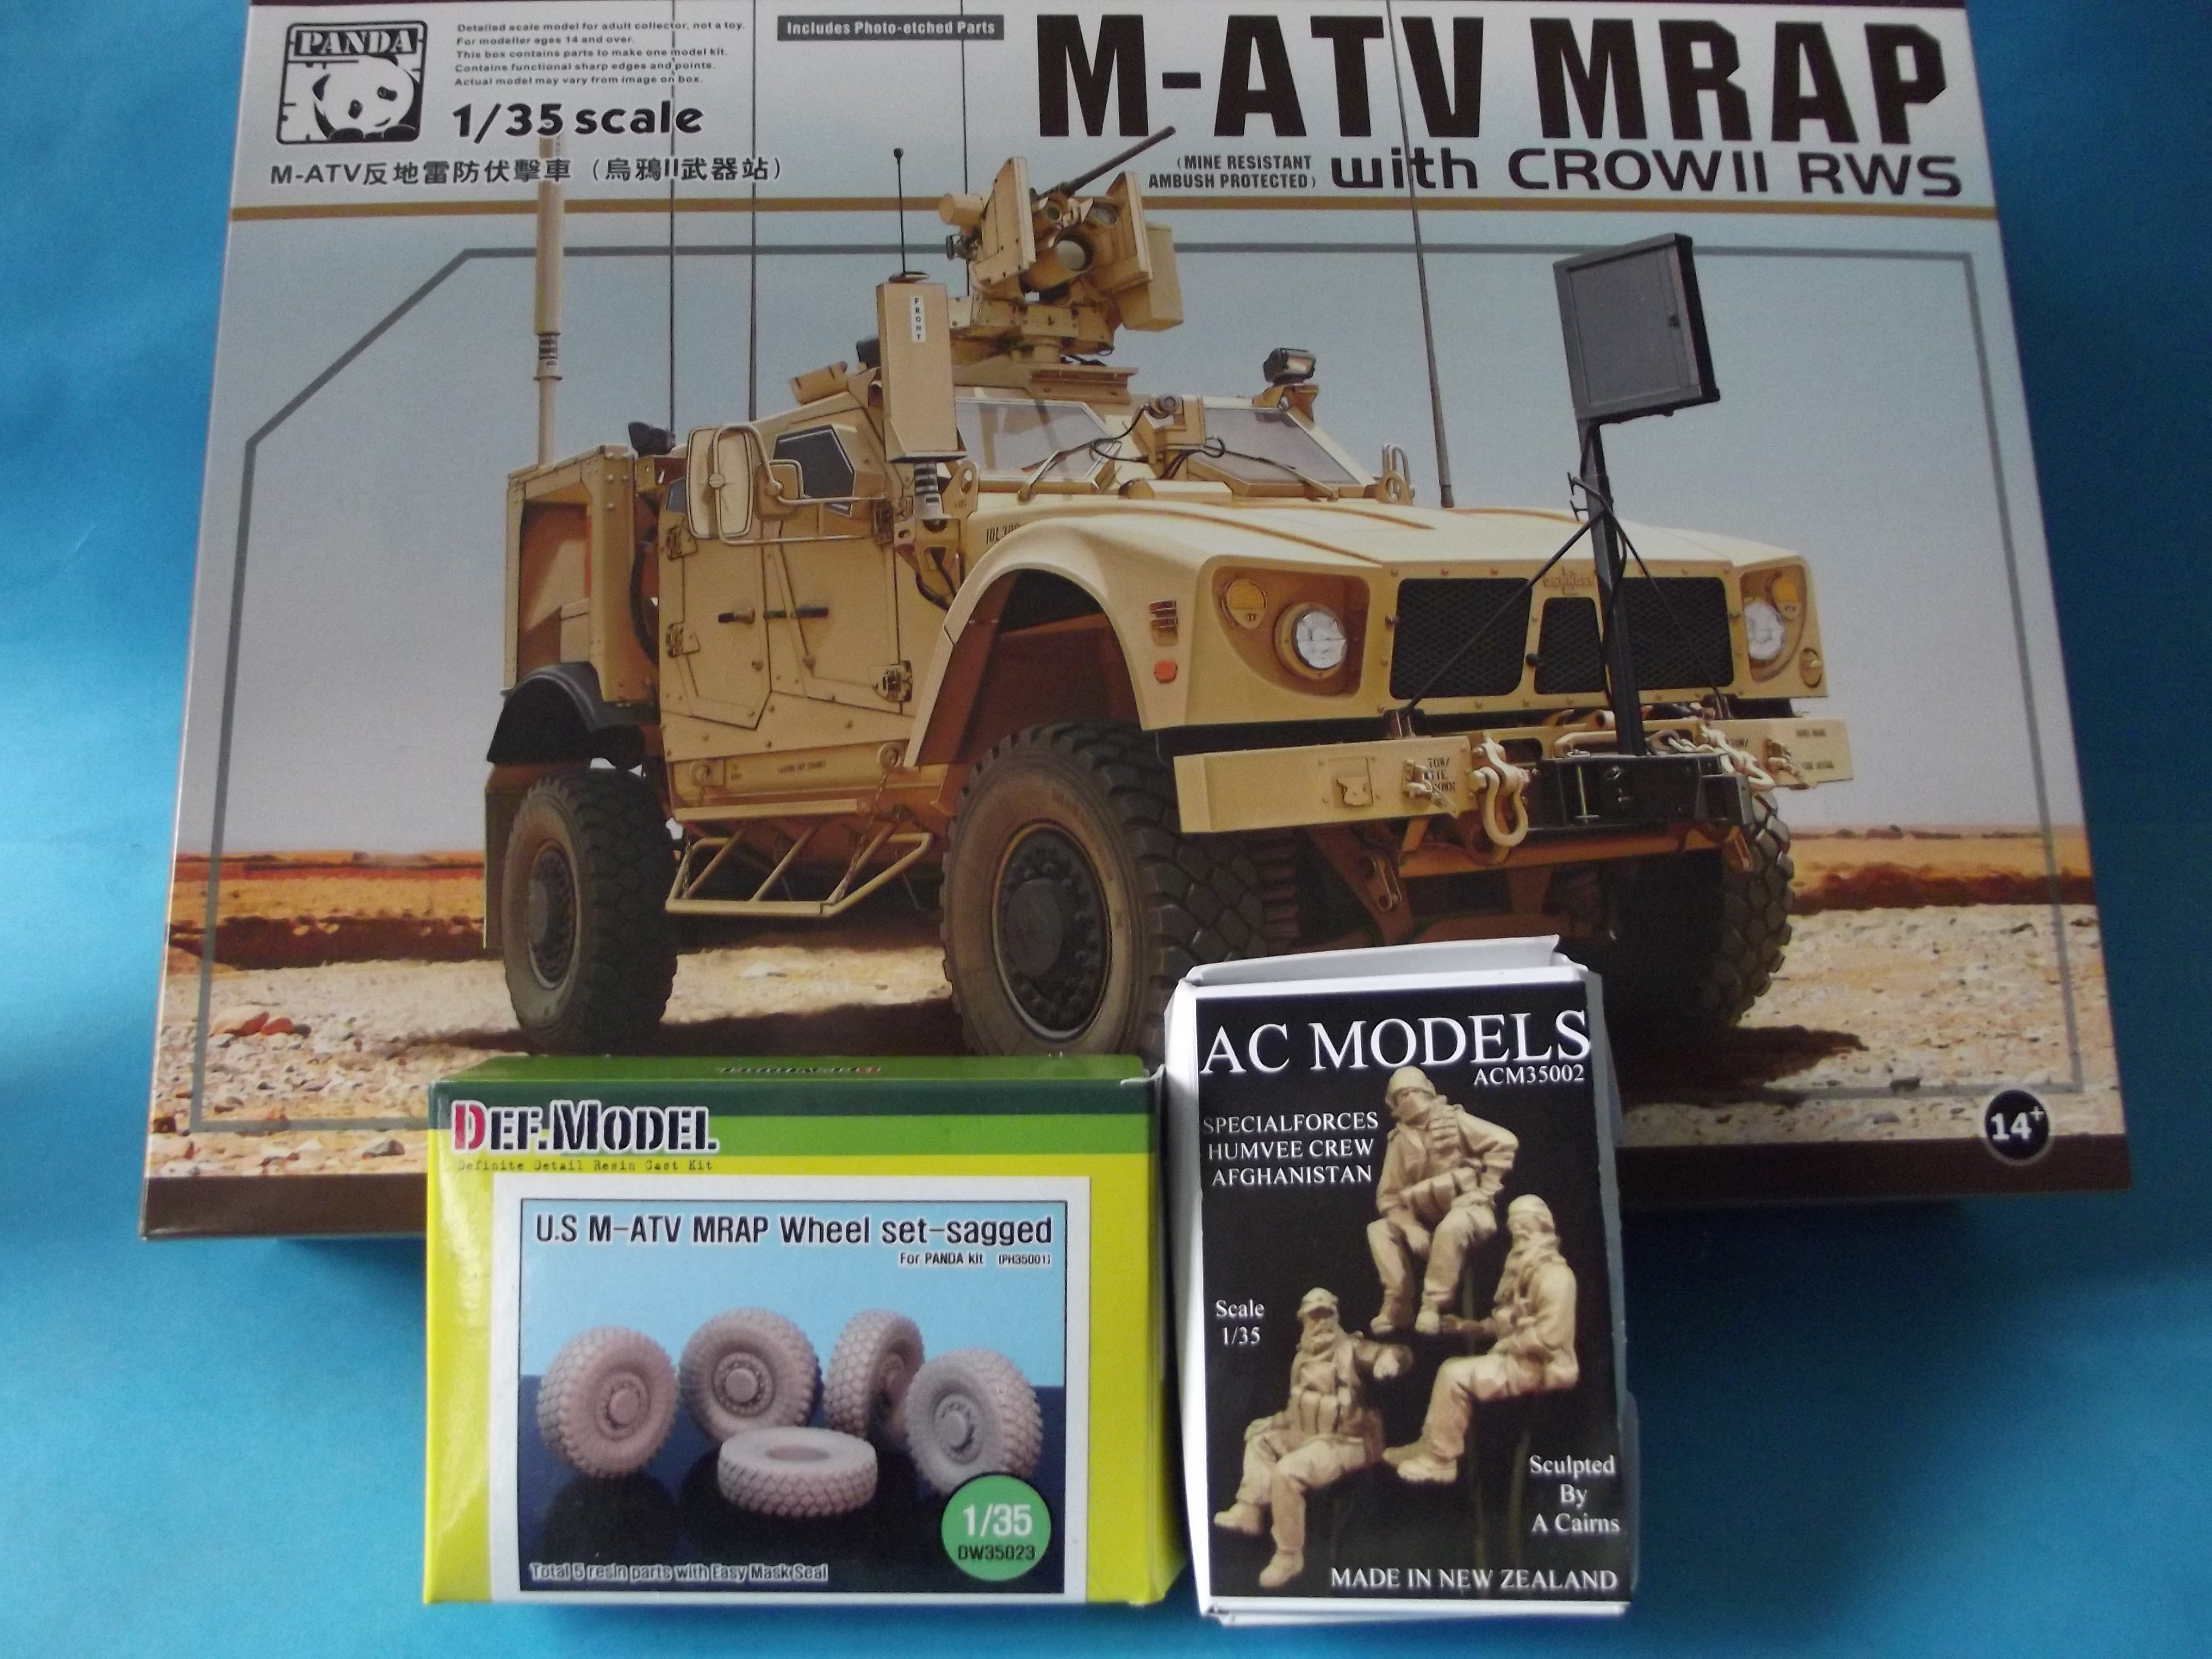 m-atv mrap with crowll rws Rnfa